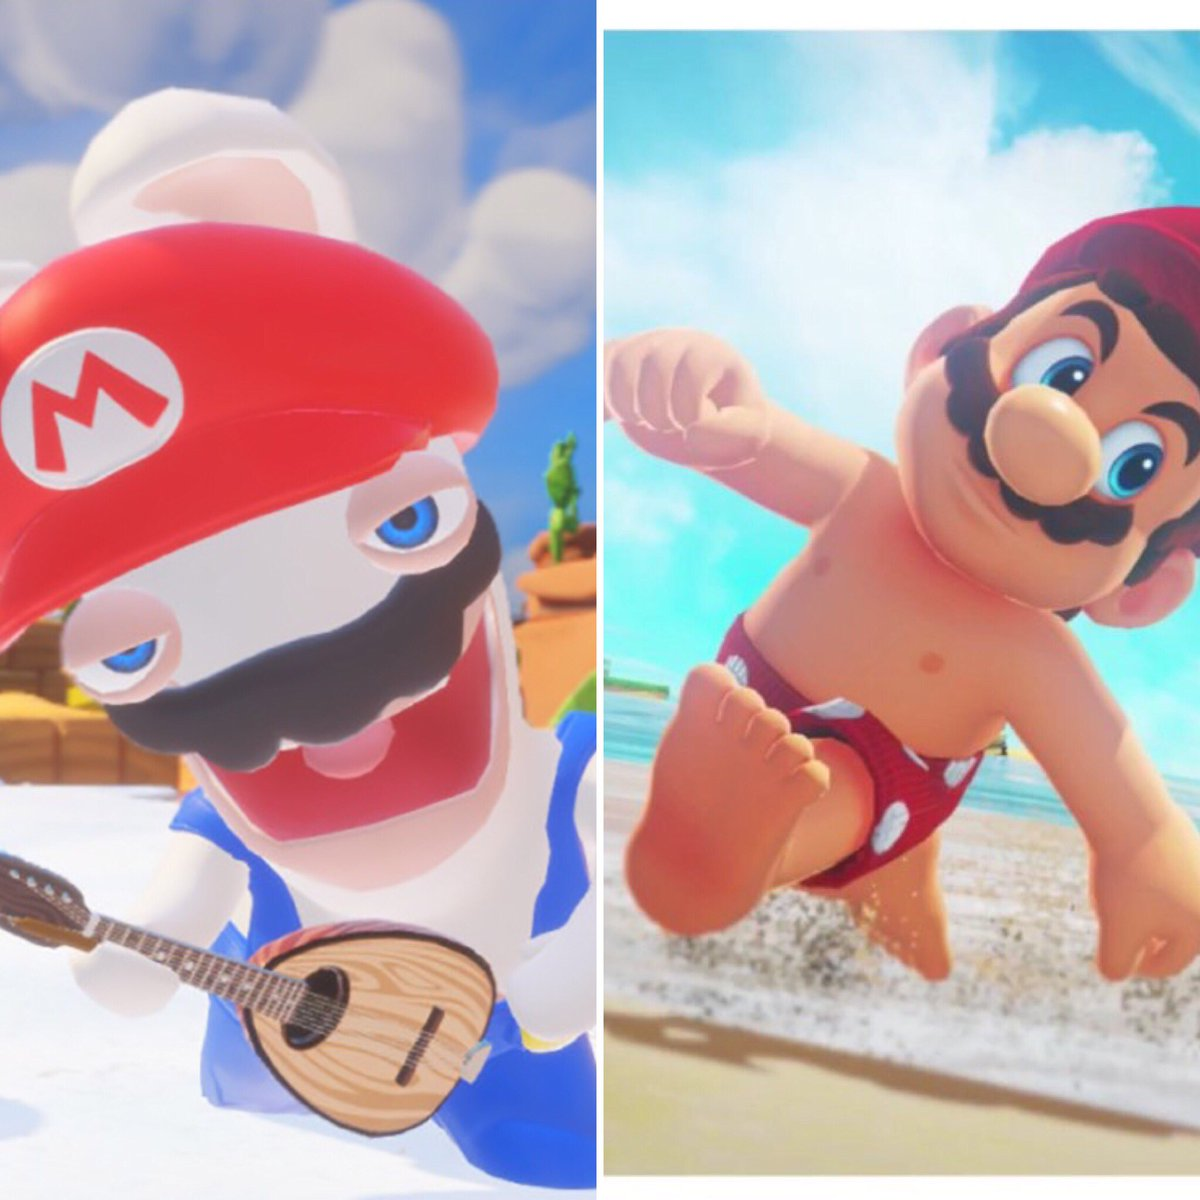 RT @CoolCatLilyZ: You vs The Guy She Says Not To Worry About #SuperMarioOdyssey #NintendoDirect https://t.co/79W1WdS2j7